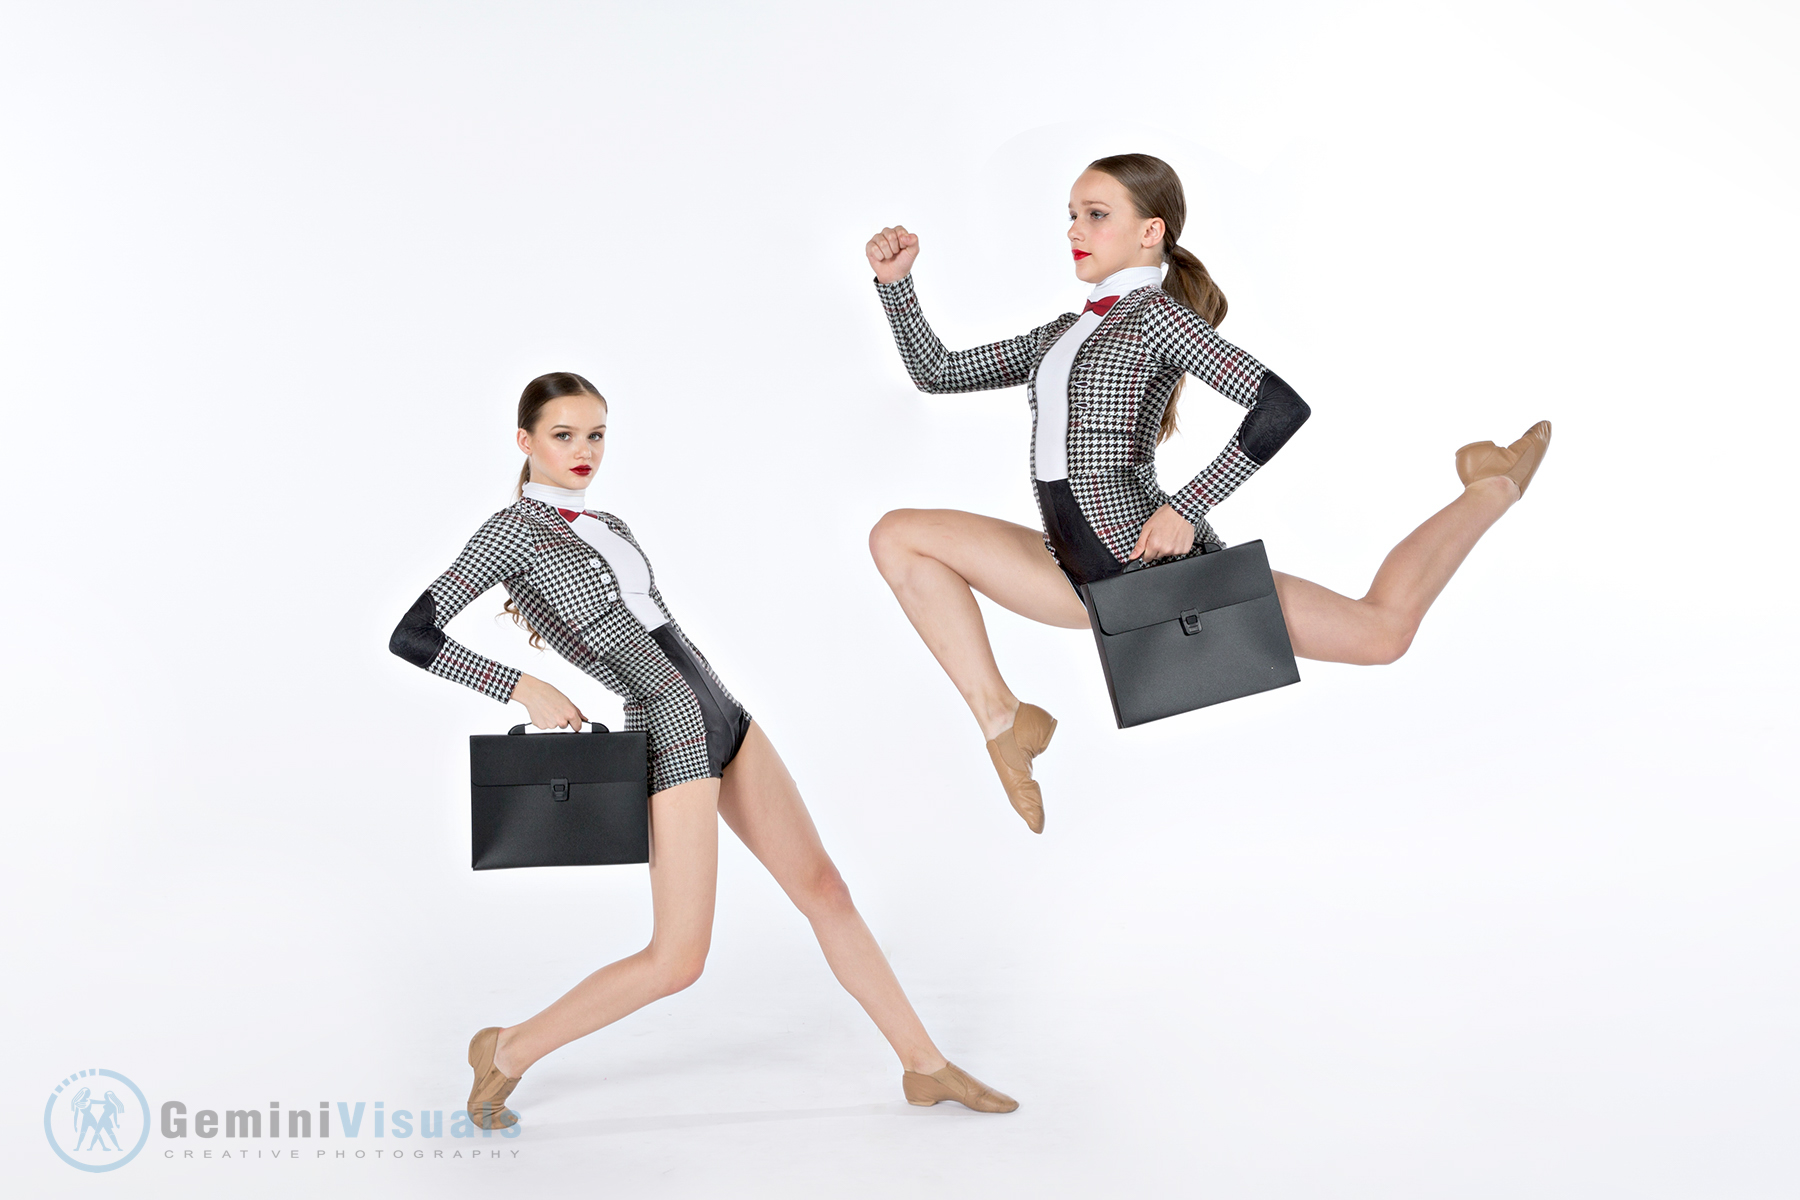 creative dance photography, creative dance photos, dance photography, adrienne thiessen